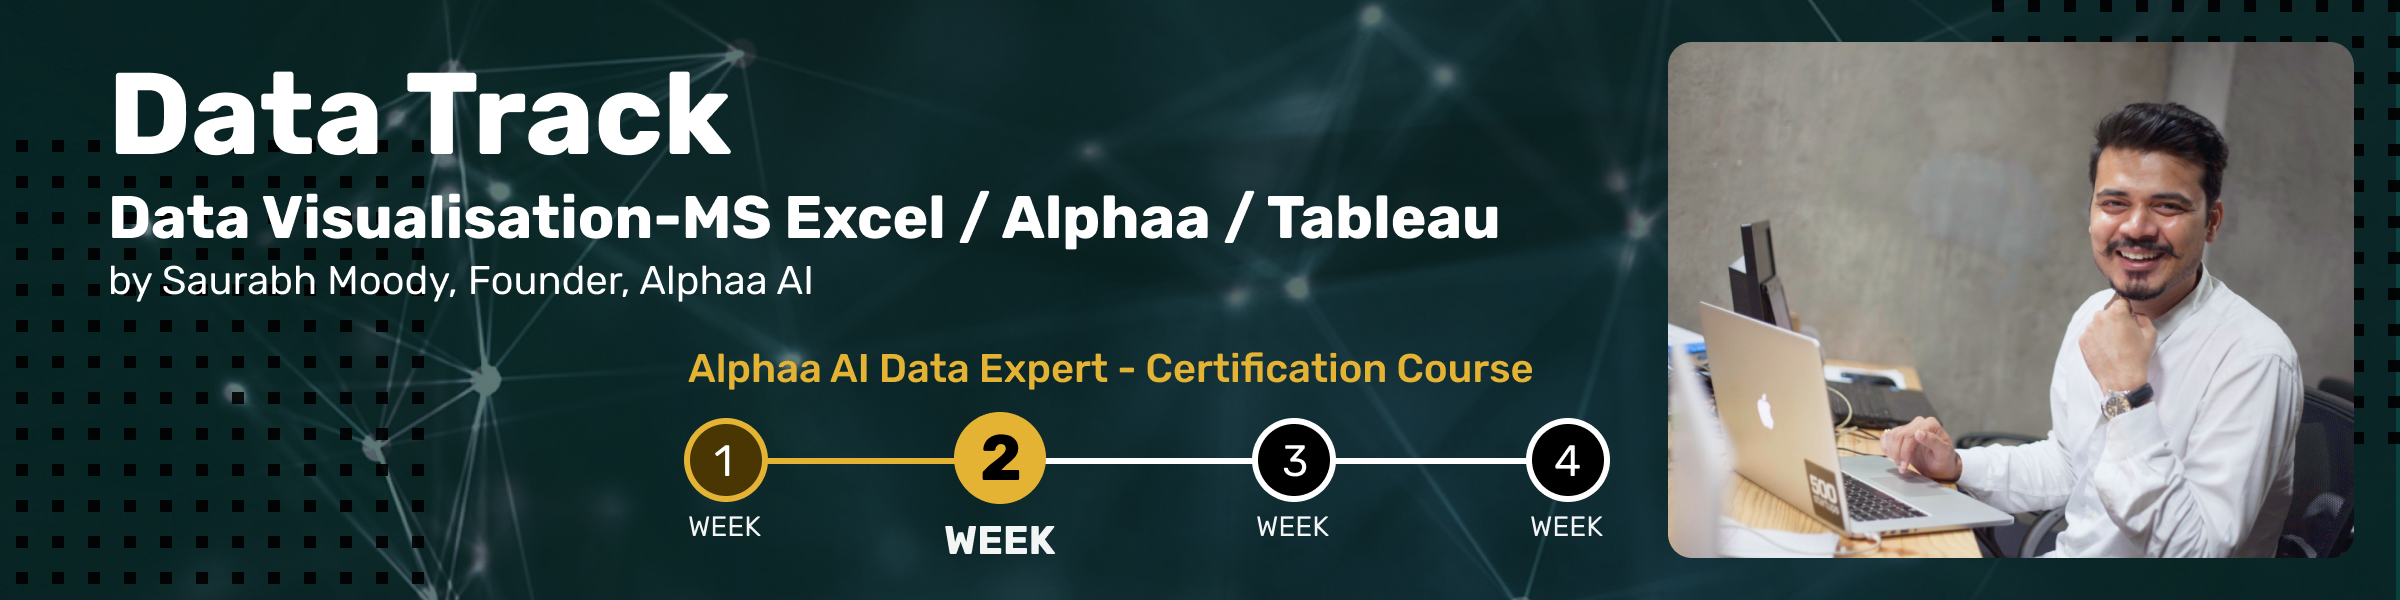 Data Visualisation - MS Excel/Alphaa AI/Tableau. Now that your data has been stored in a data warehouse or data lake, it's time to start the visualisation journey. We will focus on the current market tools and choosing the right approach based on your data strategy. Theory + Live Demo.